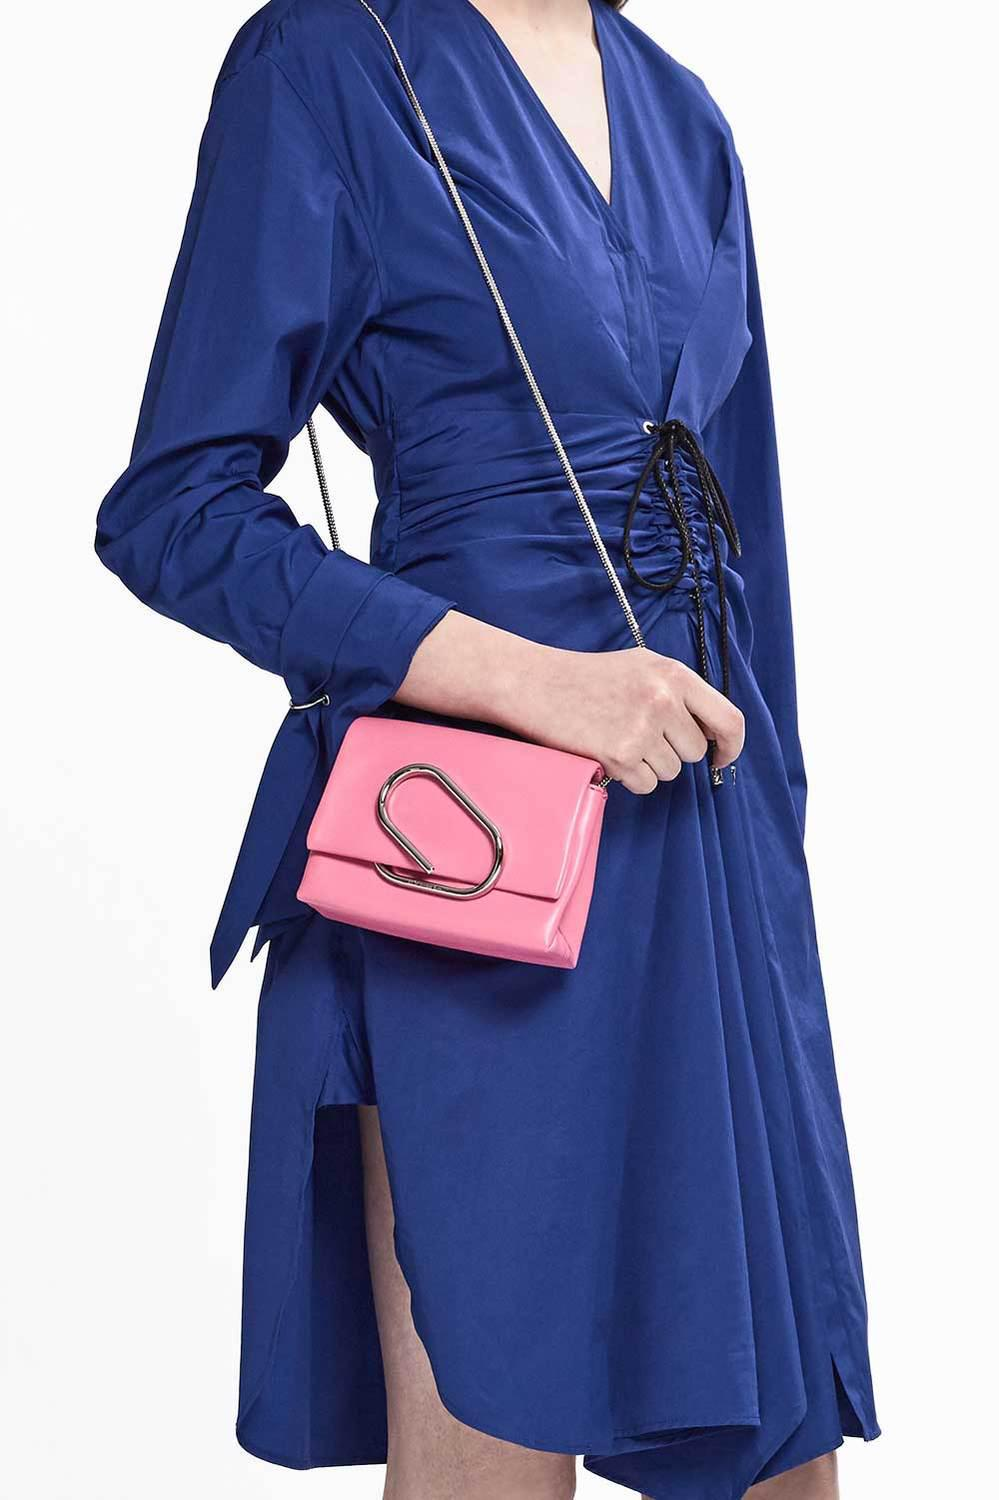 3.1 Phillip Lim Leather Alix Micro Crossbody in Candy Pink (Pink)